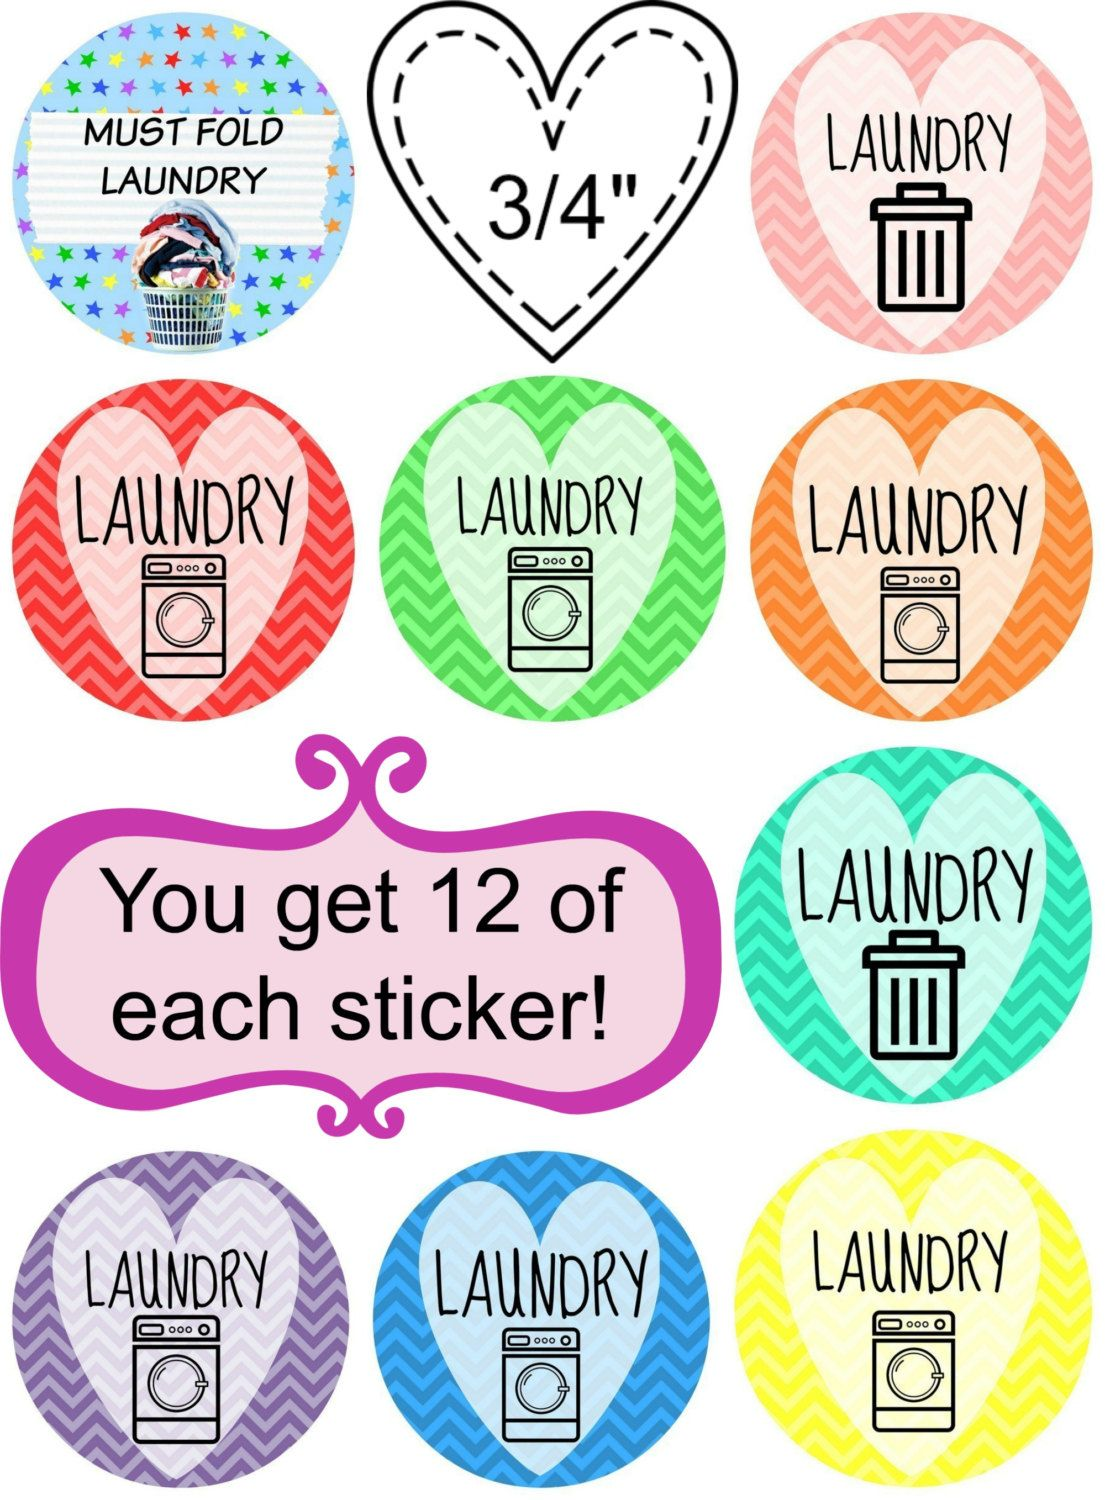 108 Planner Stickers -- Laundry Printable Planner Sticker Bundle by OrganizedHooker on Etsy